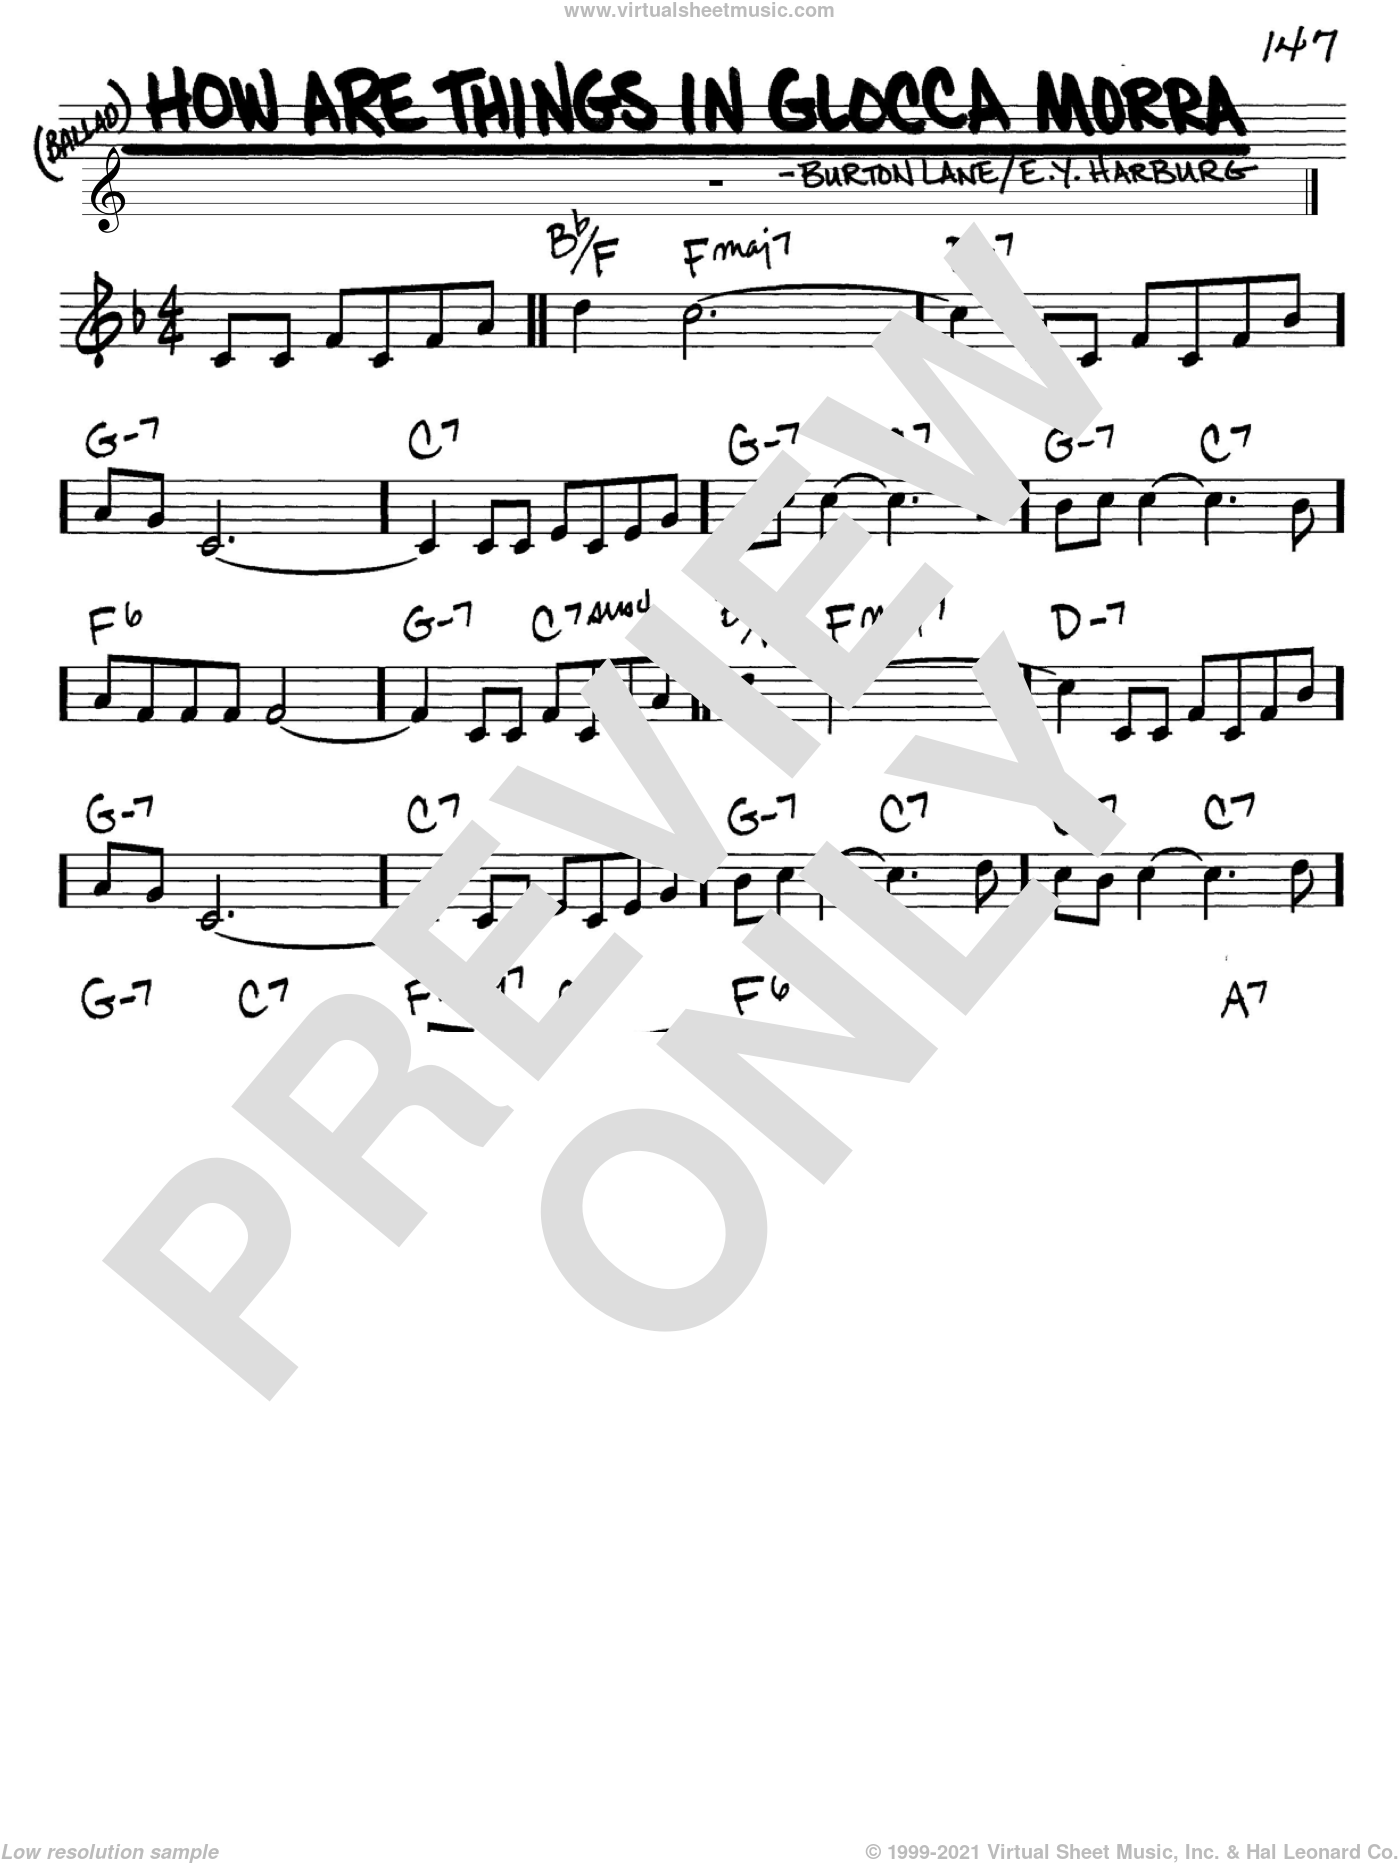 How Are Things In Glocca Morra sheet music for voice and other instruments (C) by E.Y. Harburg and Burton Lane. Score Image Preview.